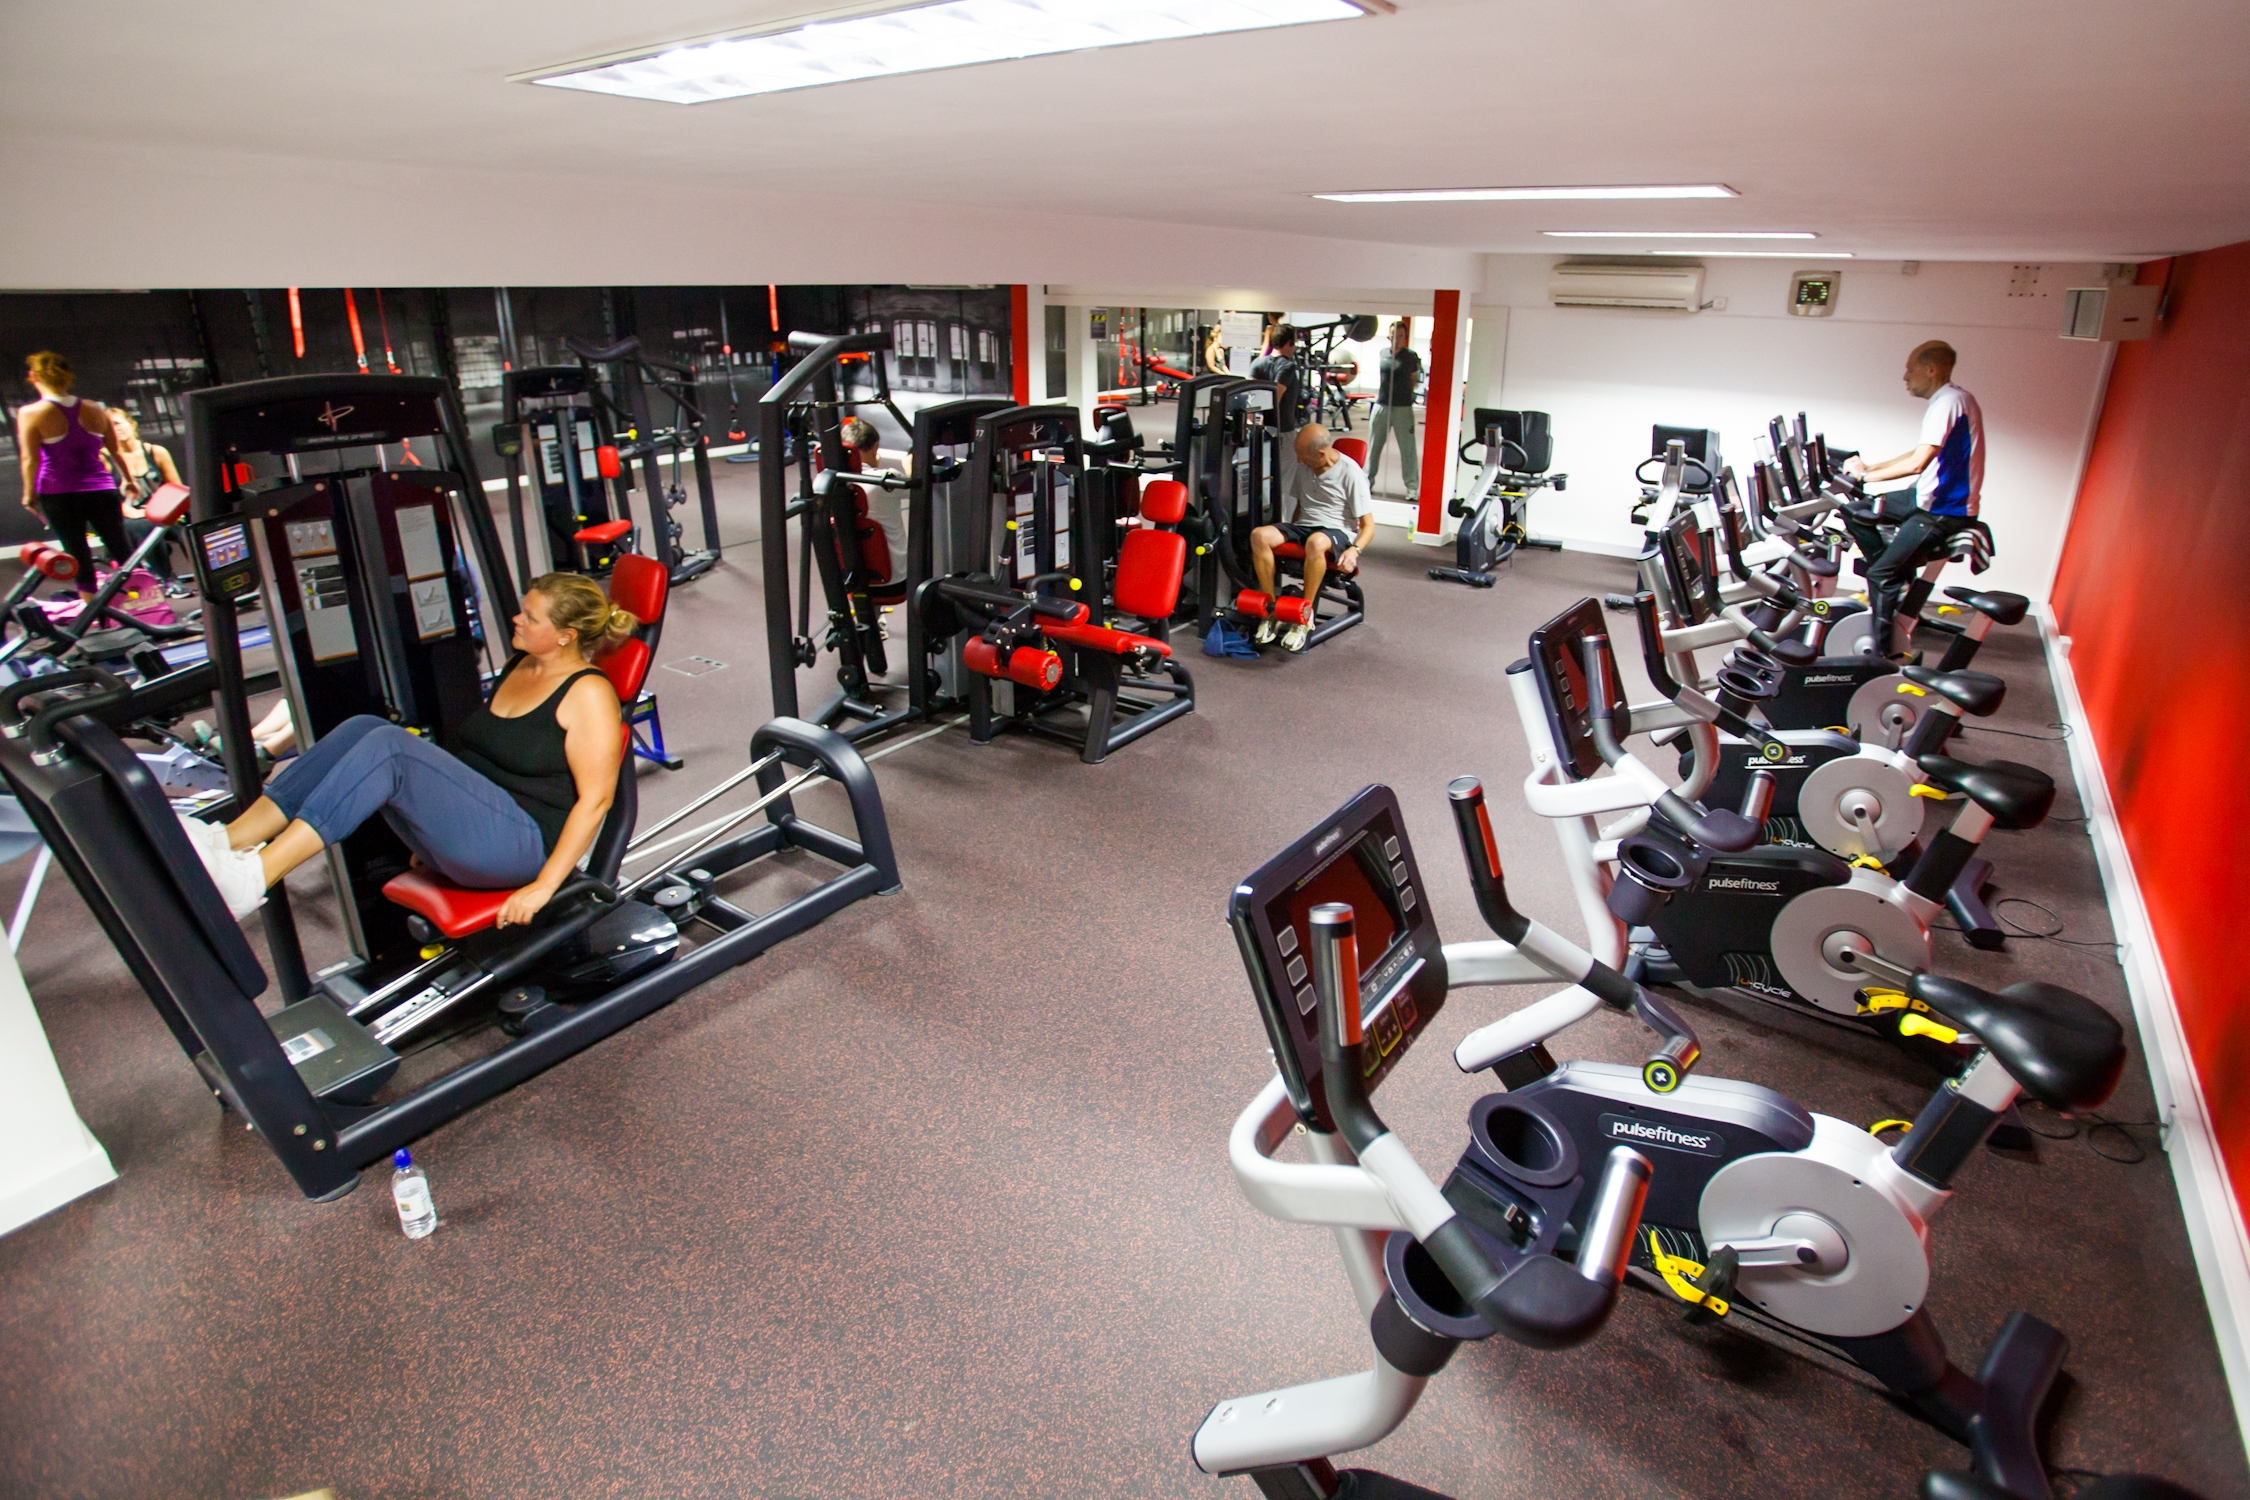 Barnet's gyms have reported an influx of users keen to shake off their Christmas excesses